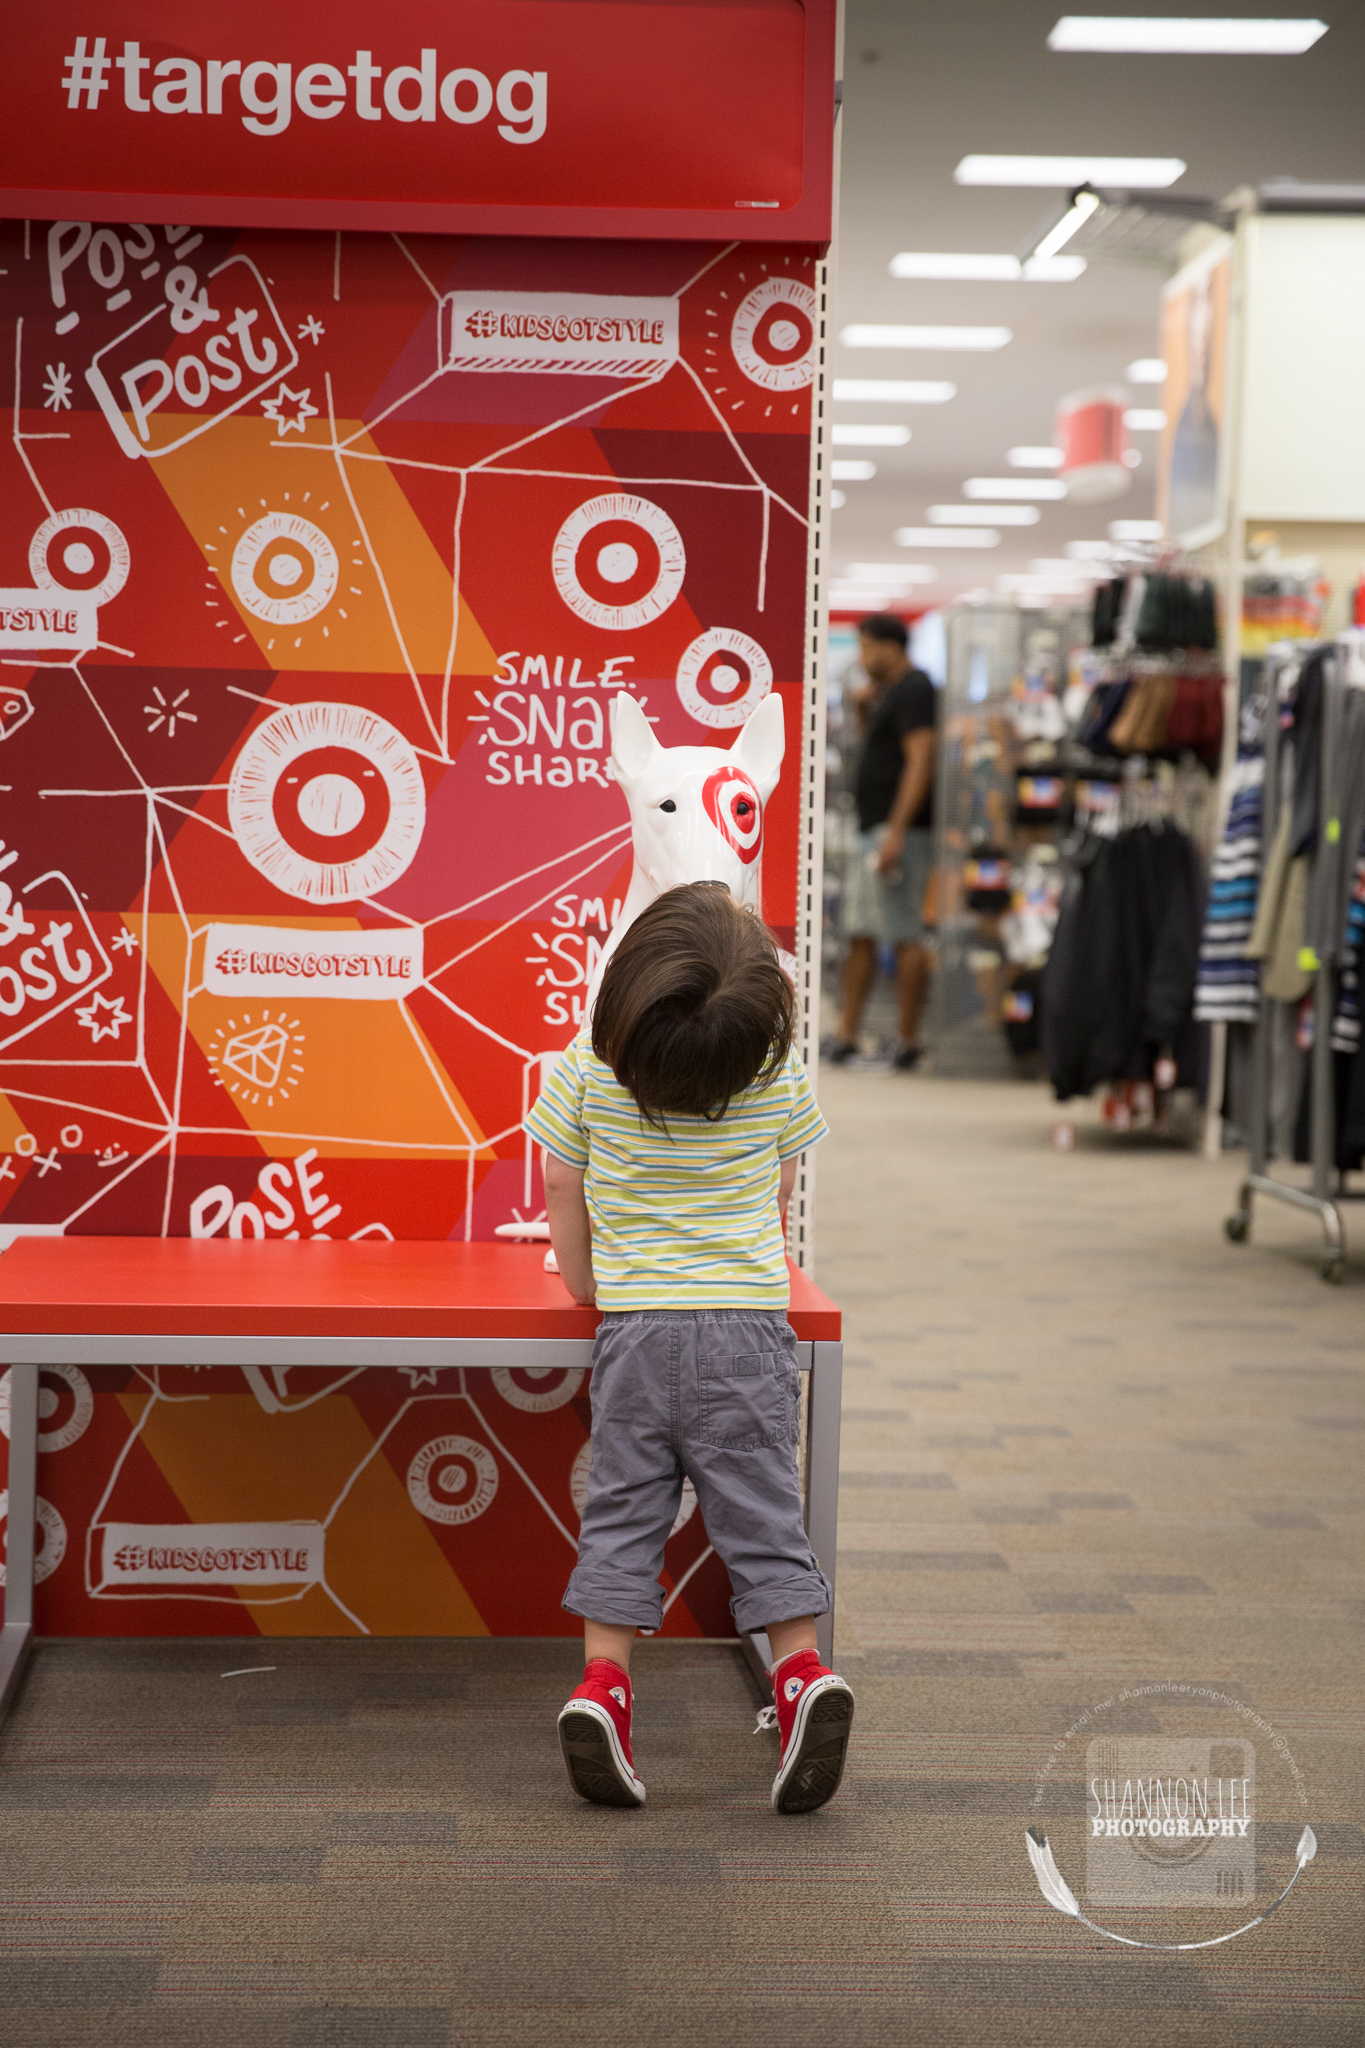 target-little-red-shopping-cart-shannon-lee-photography-long-island-New-York-1065.jpg